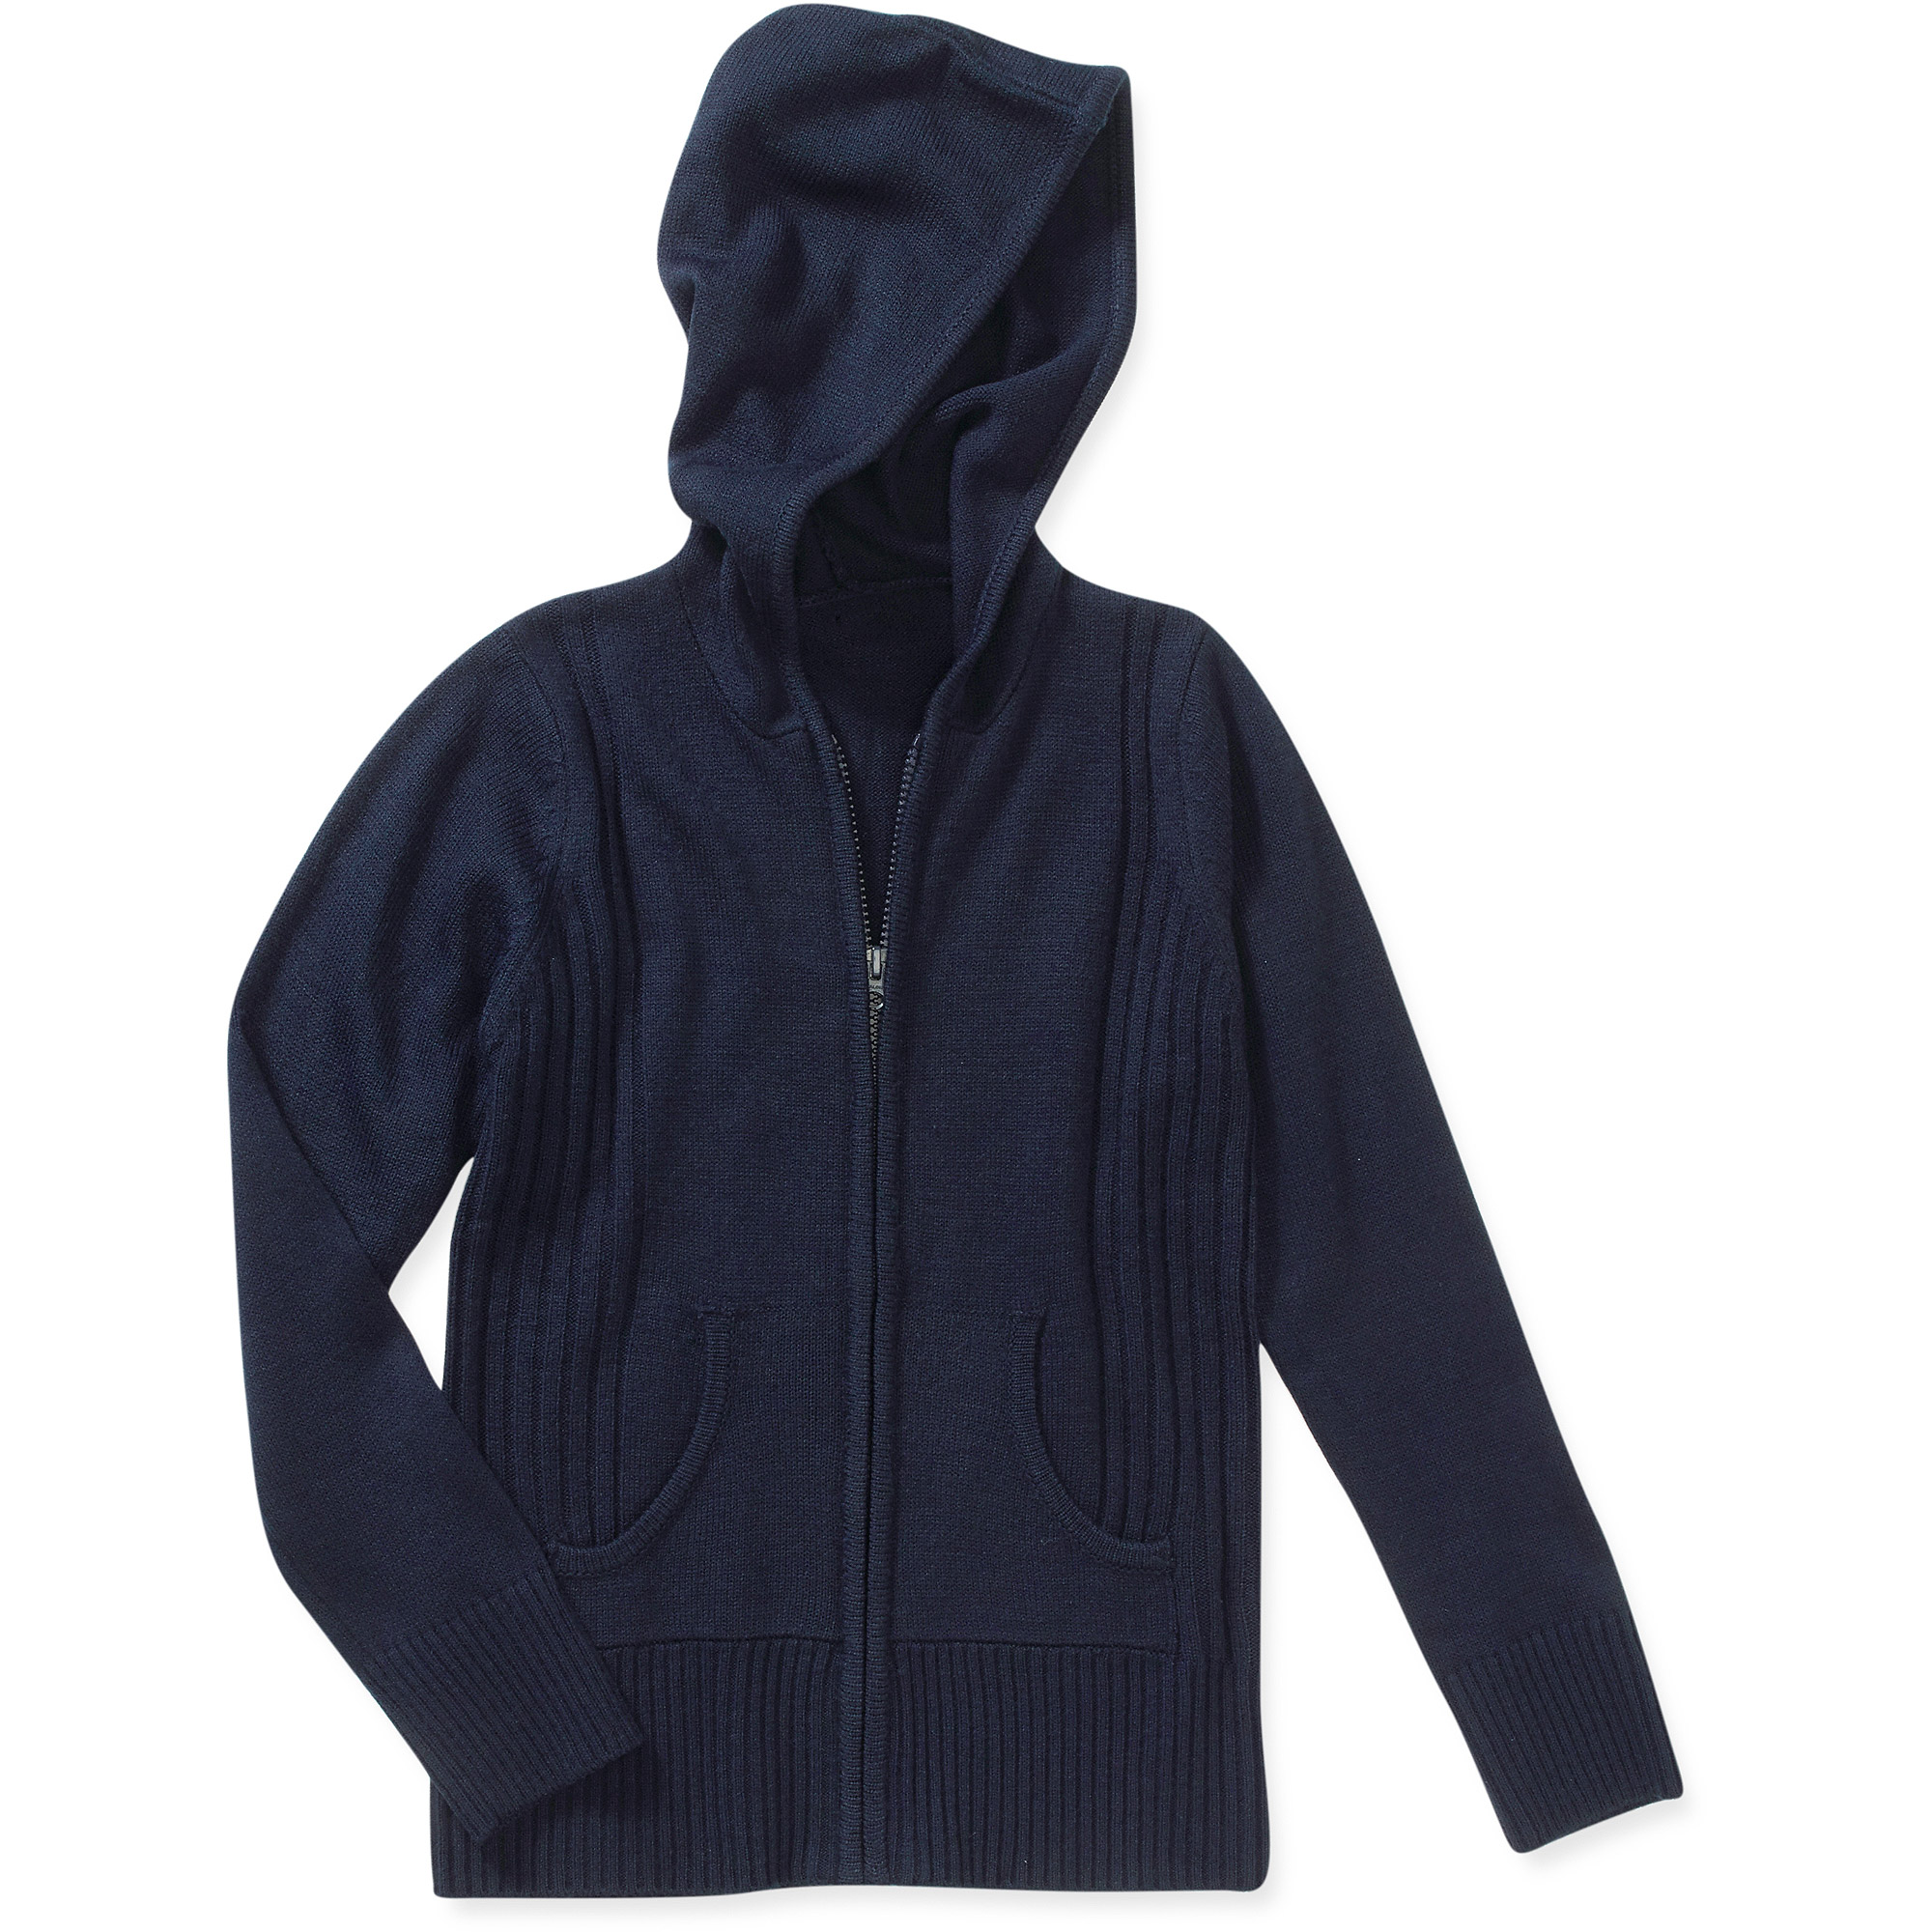 George Girls' Hooded Sweater - Walmart.com